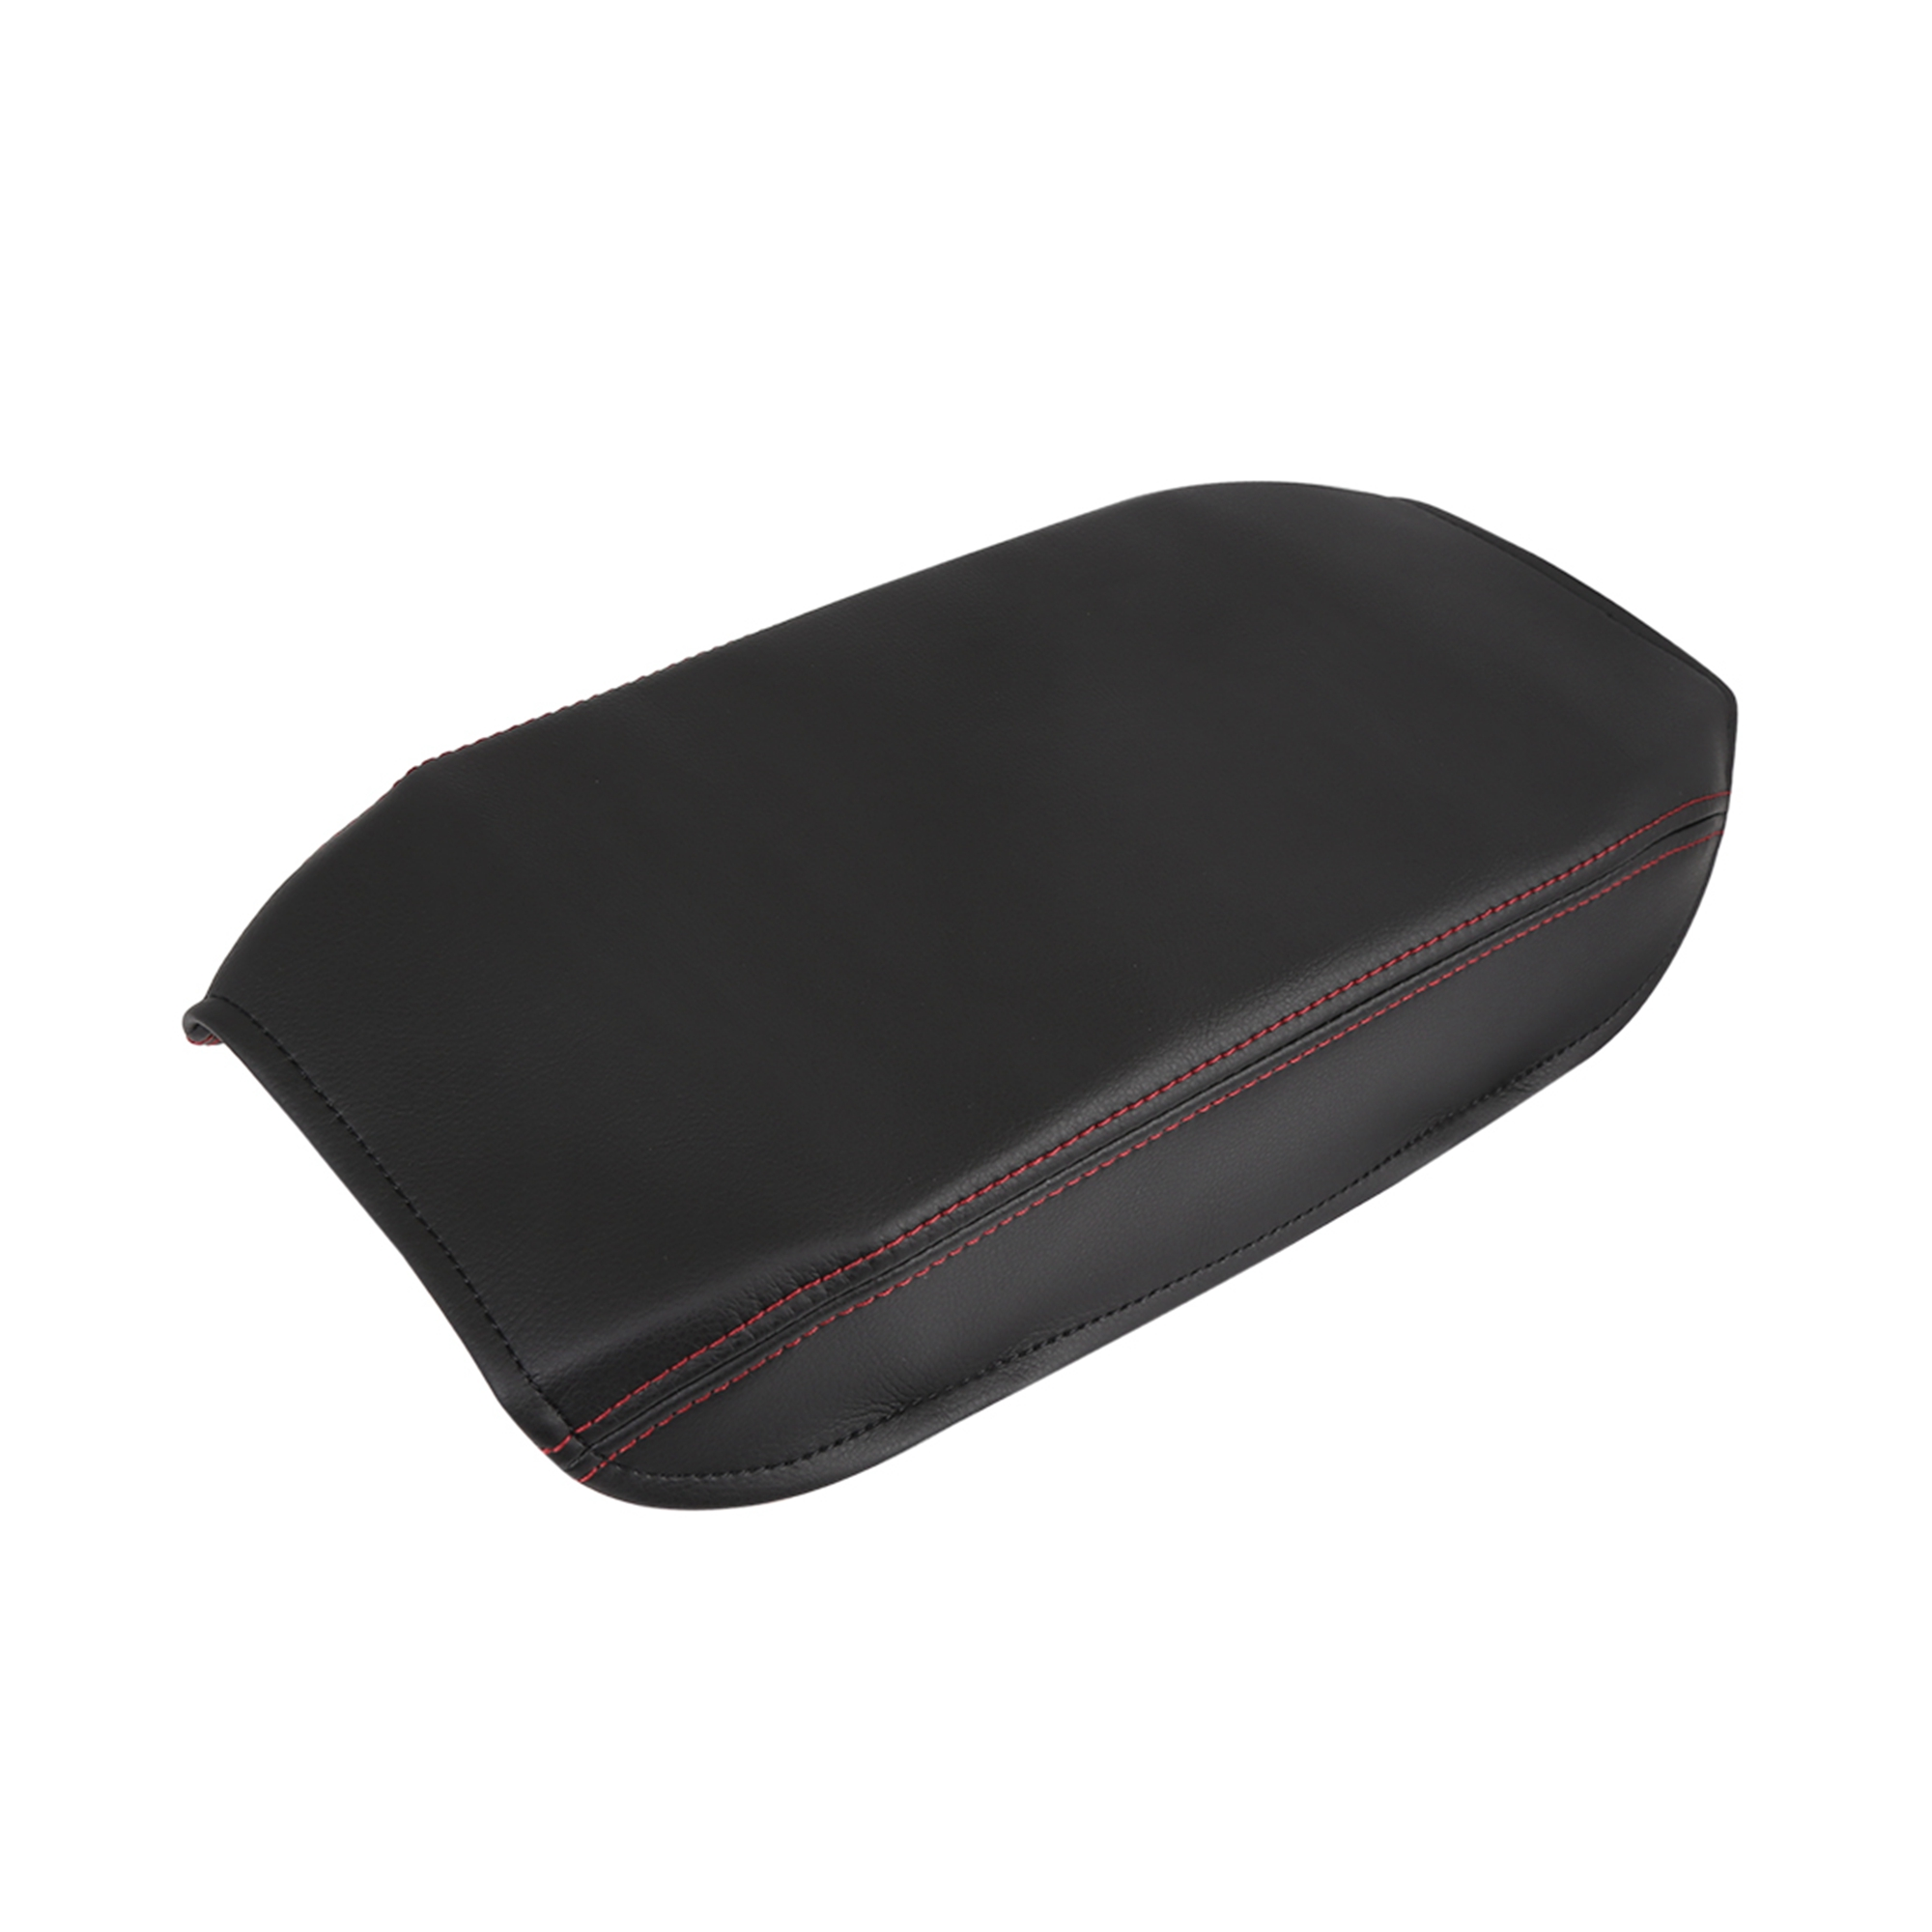 Microfiber Leather Center Console Lid Armrest Cover Skin for 07-11 Toyota Camry